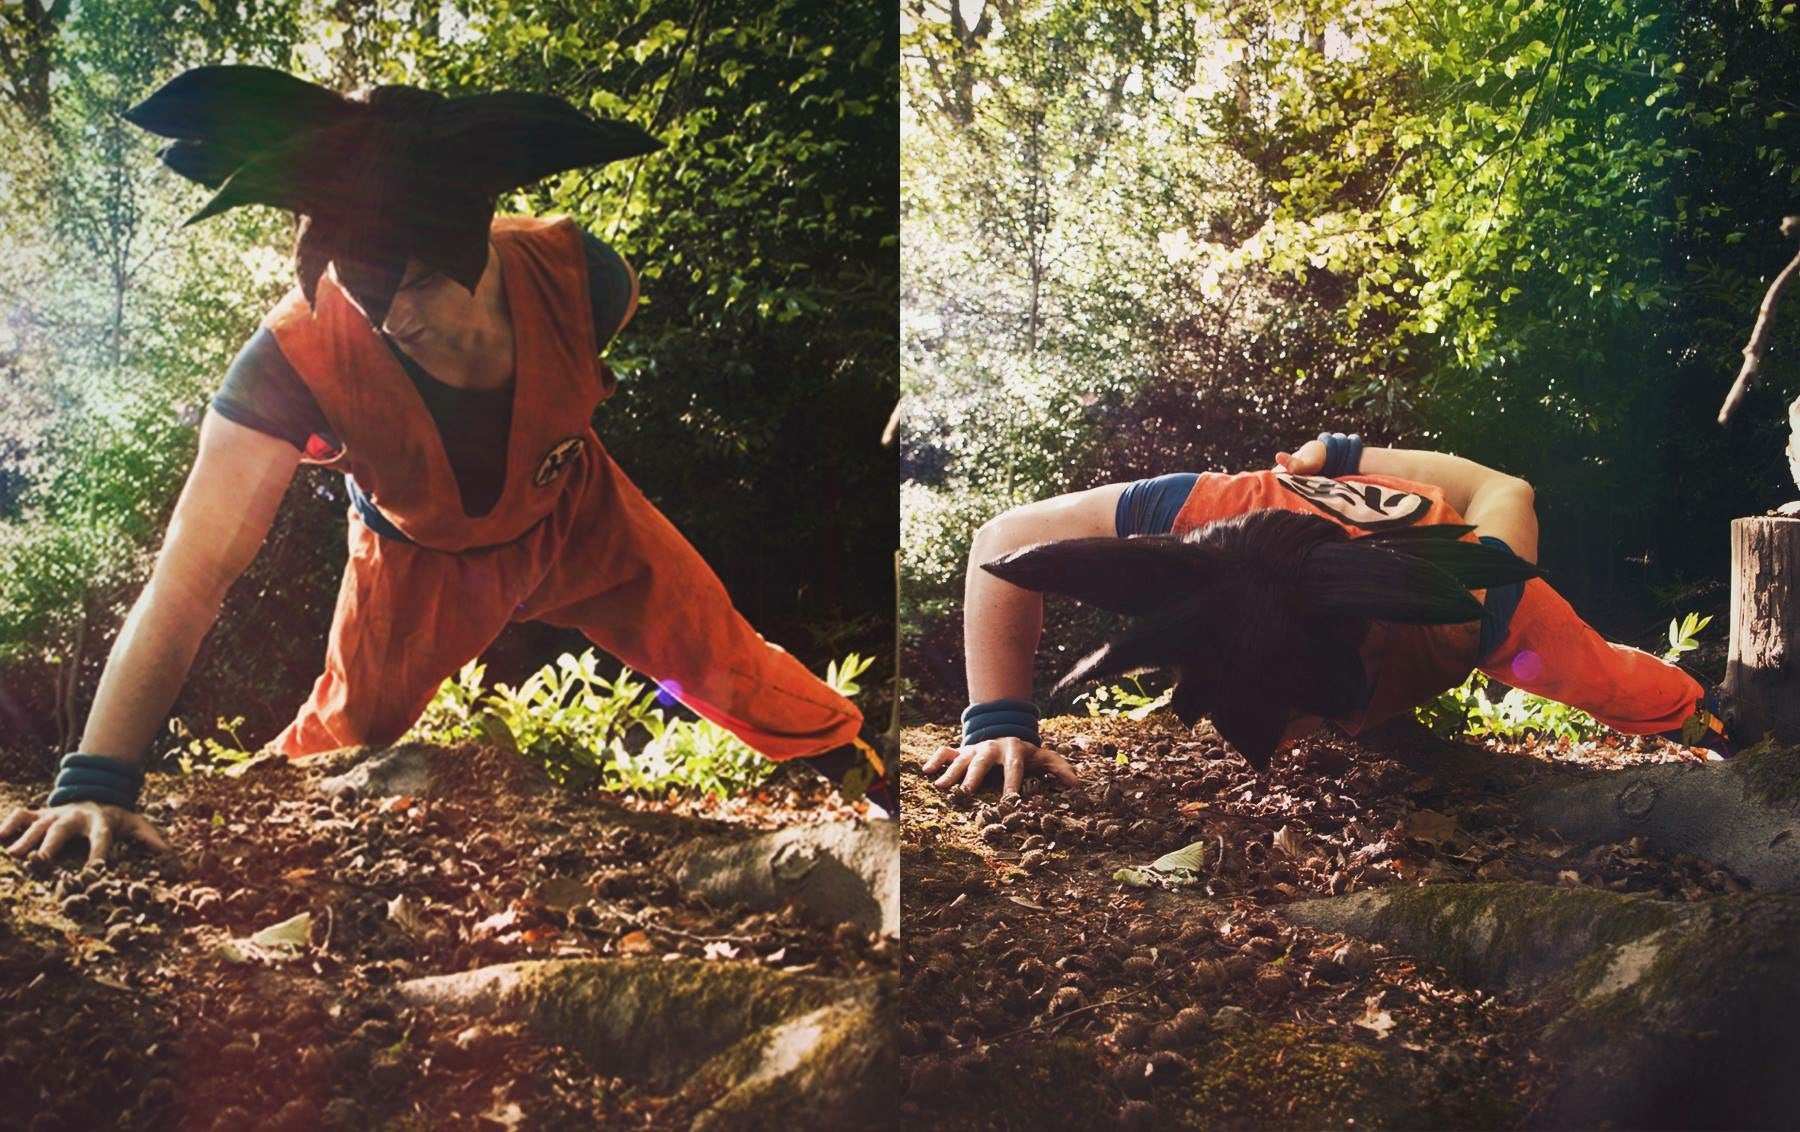 Son Goku cosplay from DragonBall Z one arm pushups